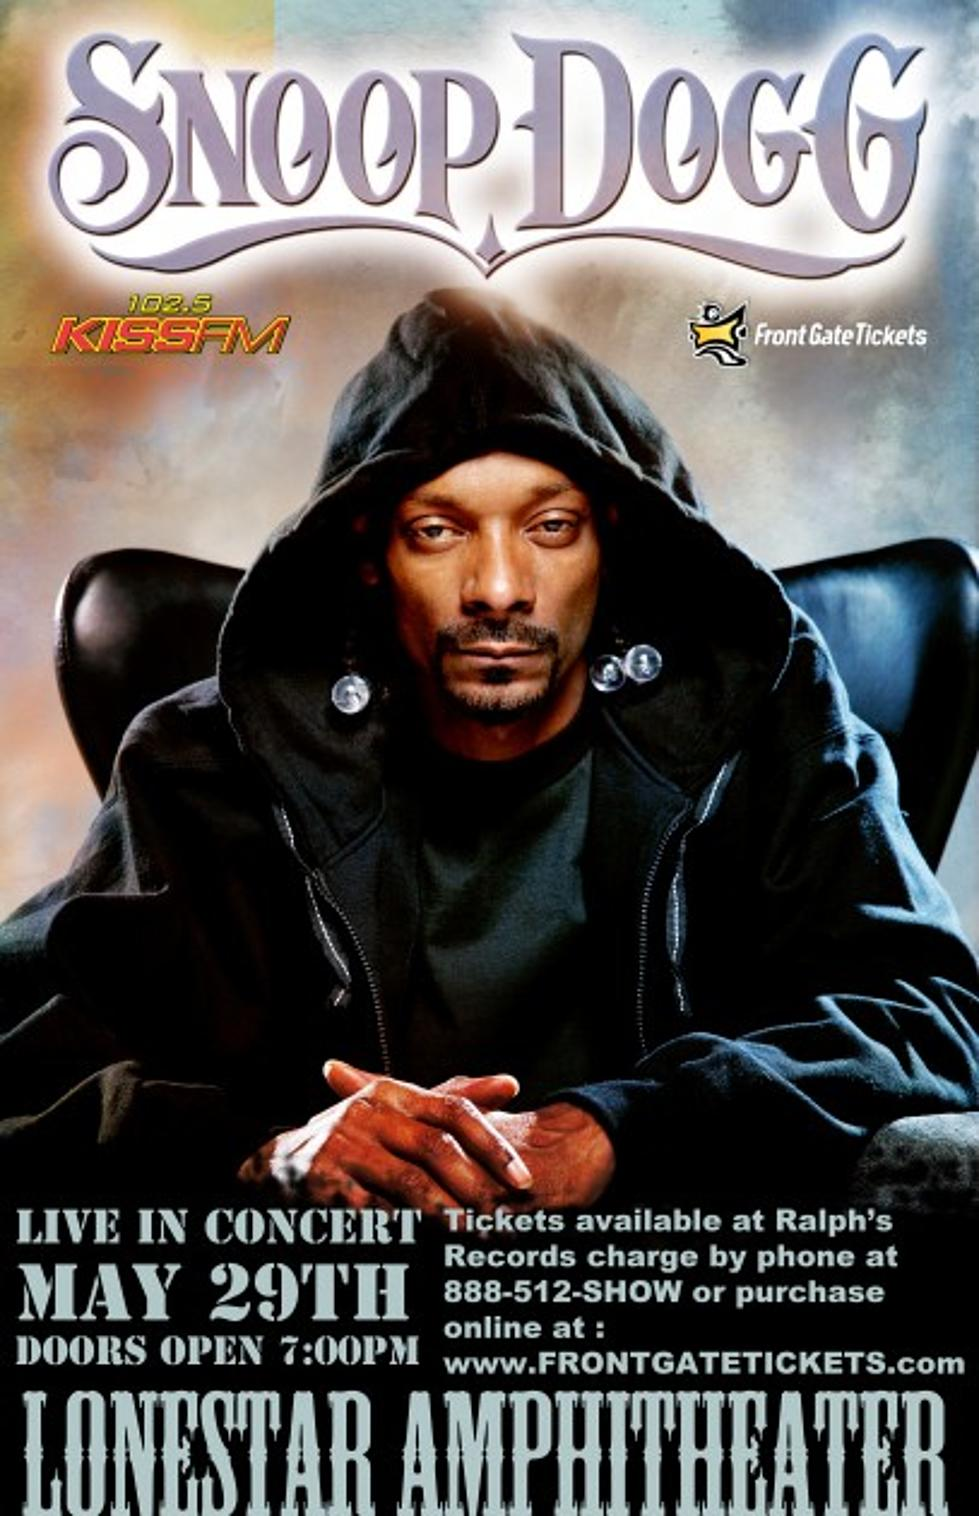 Kiss Fm Presents Snoop Dogg Back In Lubbock May 30th Video